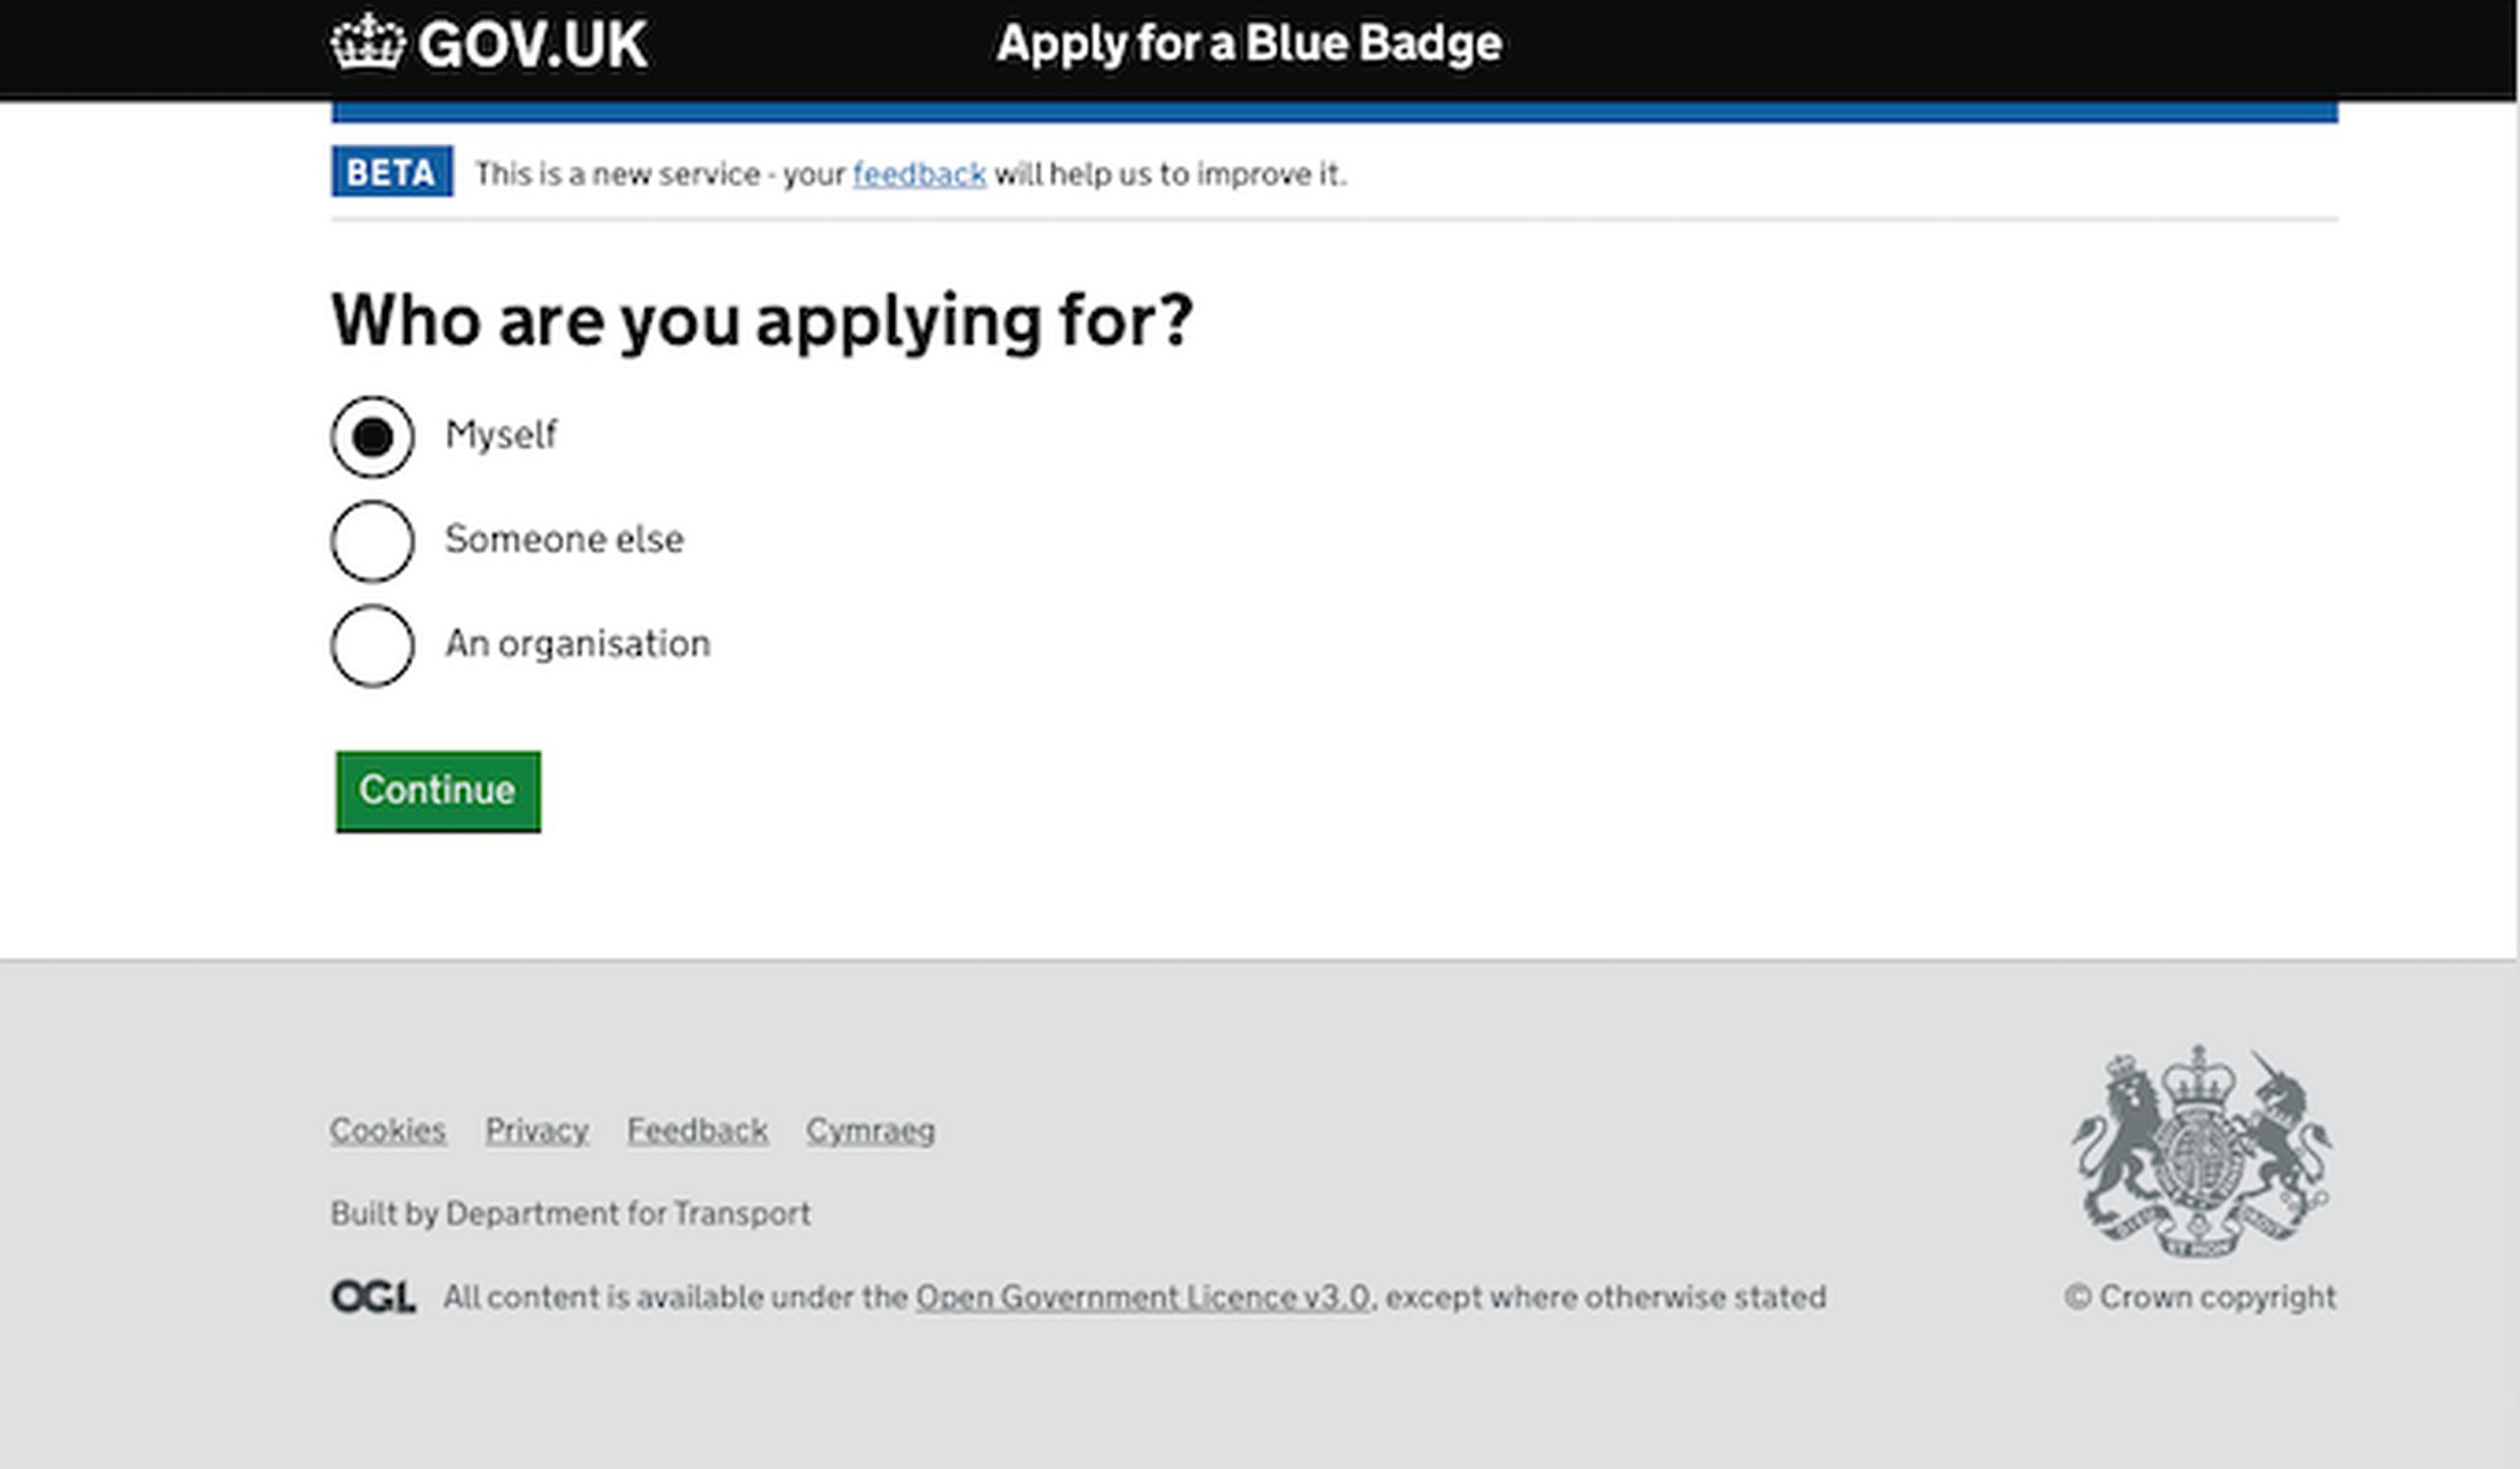 The new DfT Blue Badge application portal